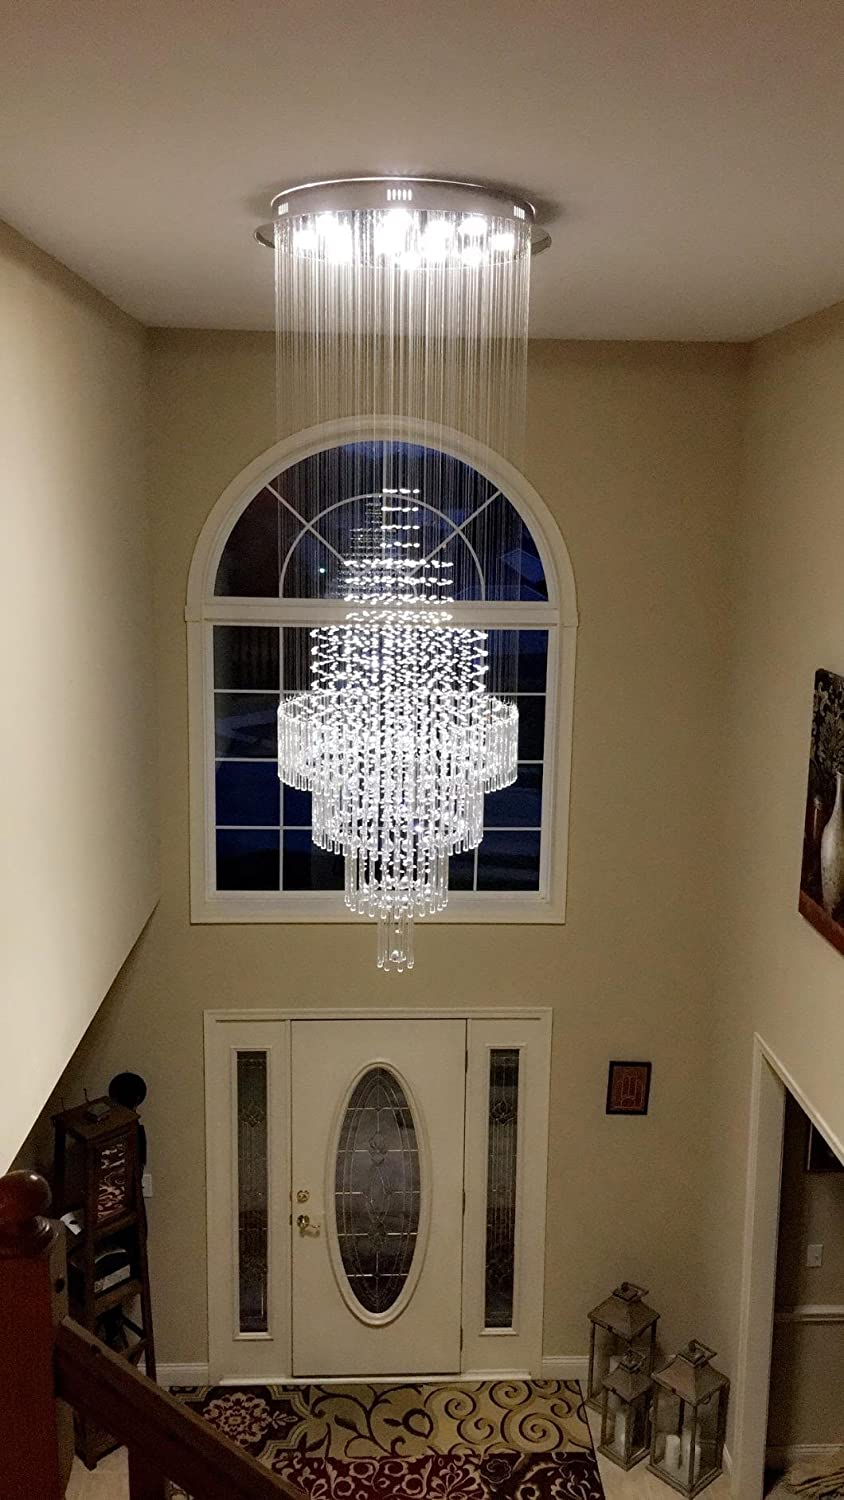 Moooni Large Modern Luxury Crystal Chandelier Lighting for Living Room Porch Hallway D 31.5 x 79 H